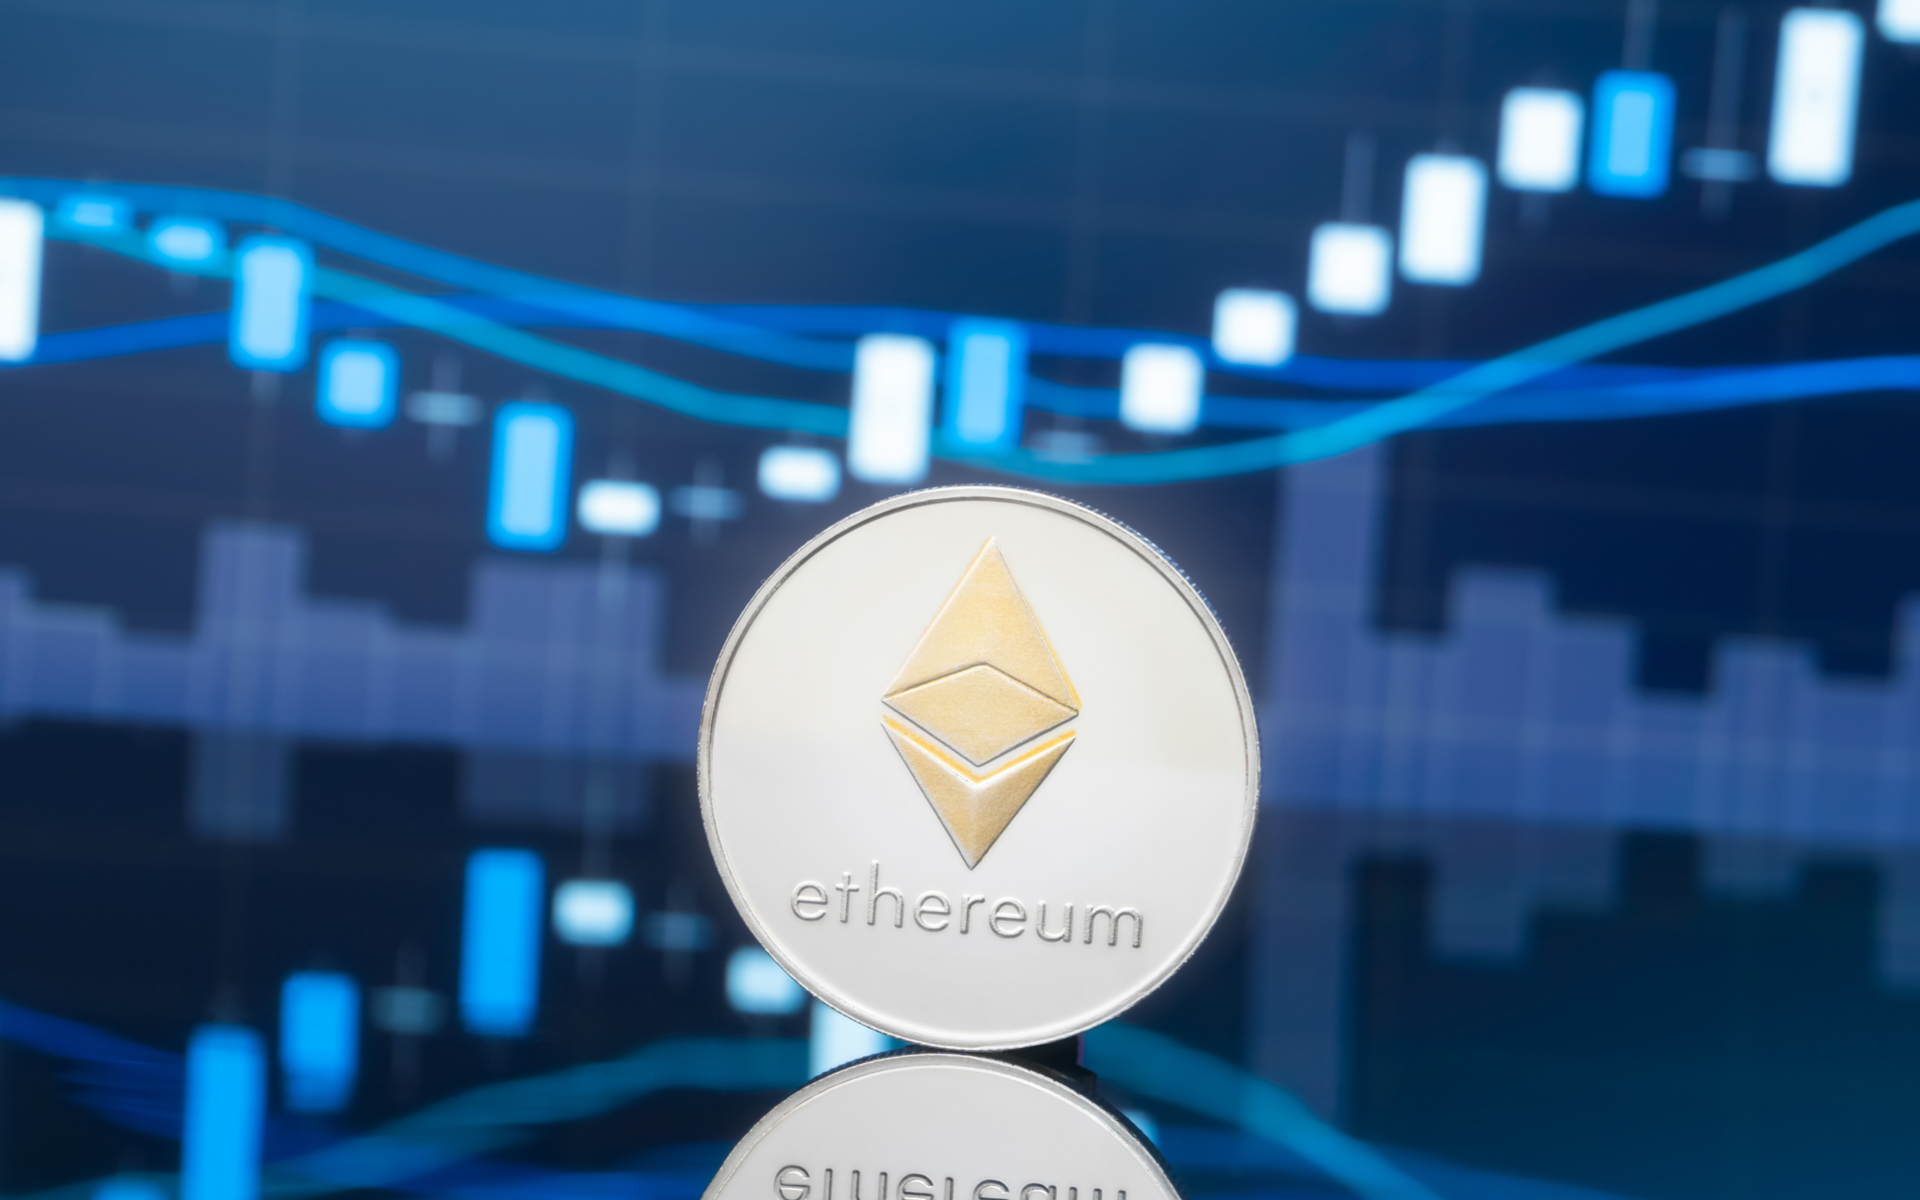 Ethereum Price Analysis: Is ETH Carving a Path to $200?